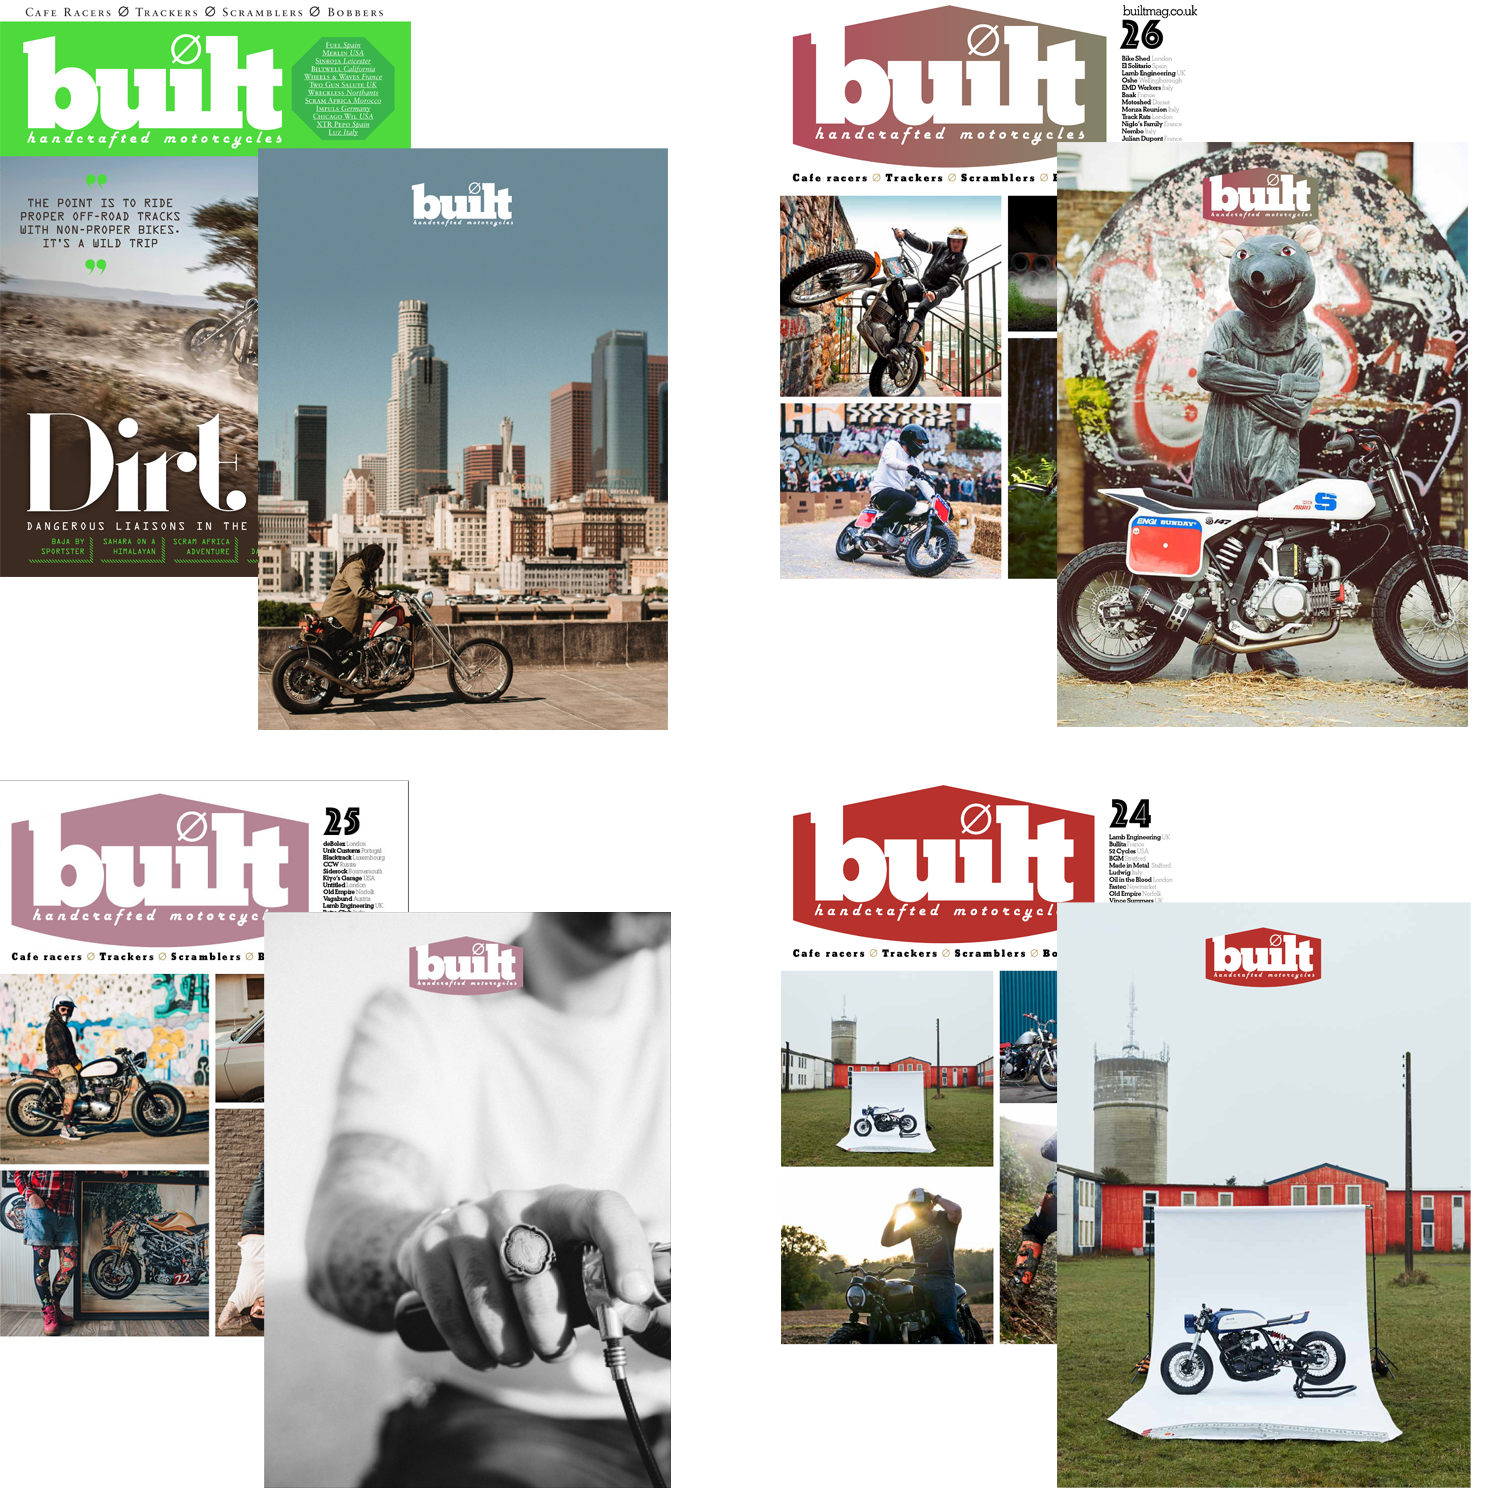 Exclusive Built magazine subscriber covers